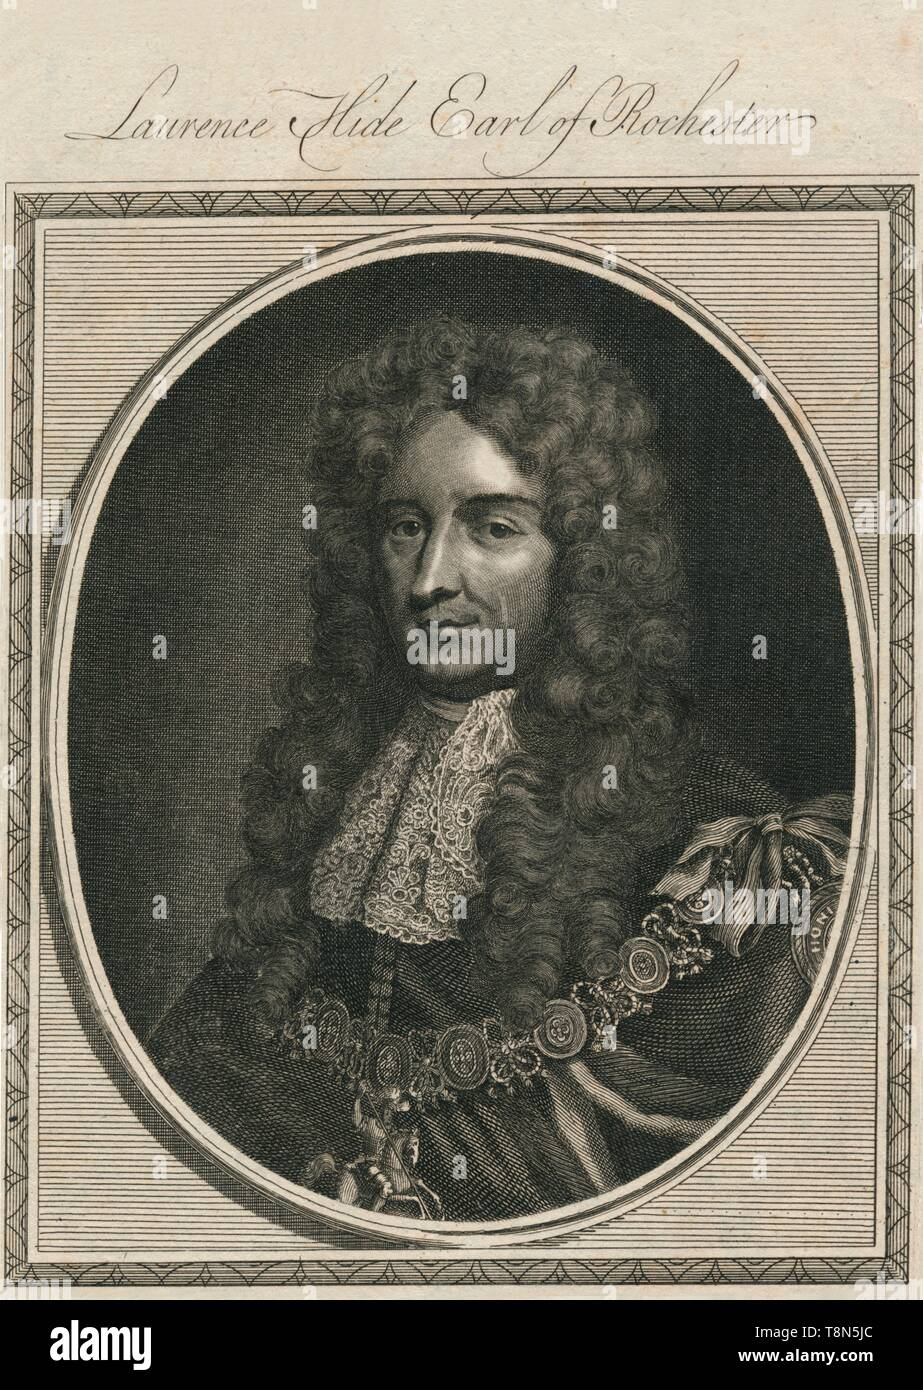 "'Laurence Hide Earl of Rochester', 1785. Laurence Hide, 1st Earl of Rochester (1642-1711),  English statesman and writer,  originally a supporter of James II he later supported the Glorious Revolution in 1688.  First Lord of the Treasury From ""The History of England"" by Paul de Rapin-Thoyras. [Harrison, London, England] - Stock Image"